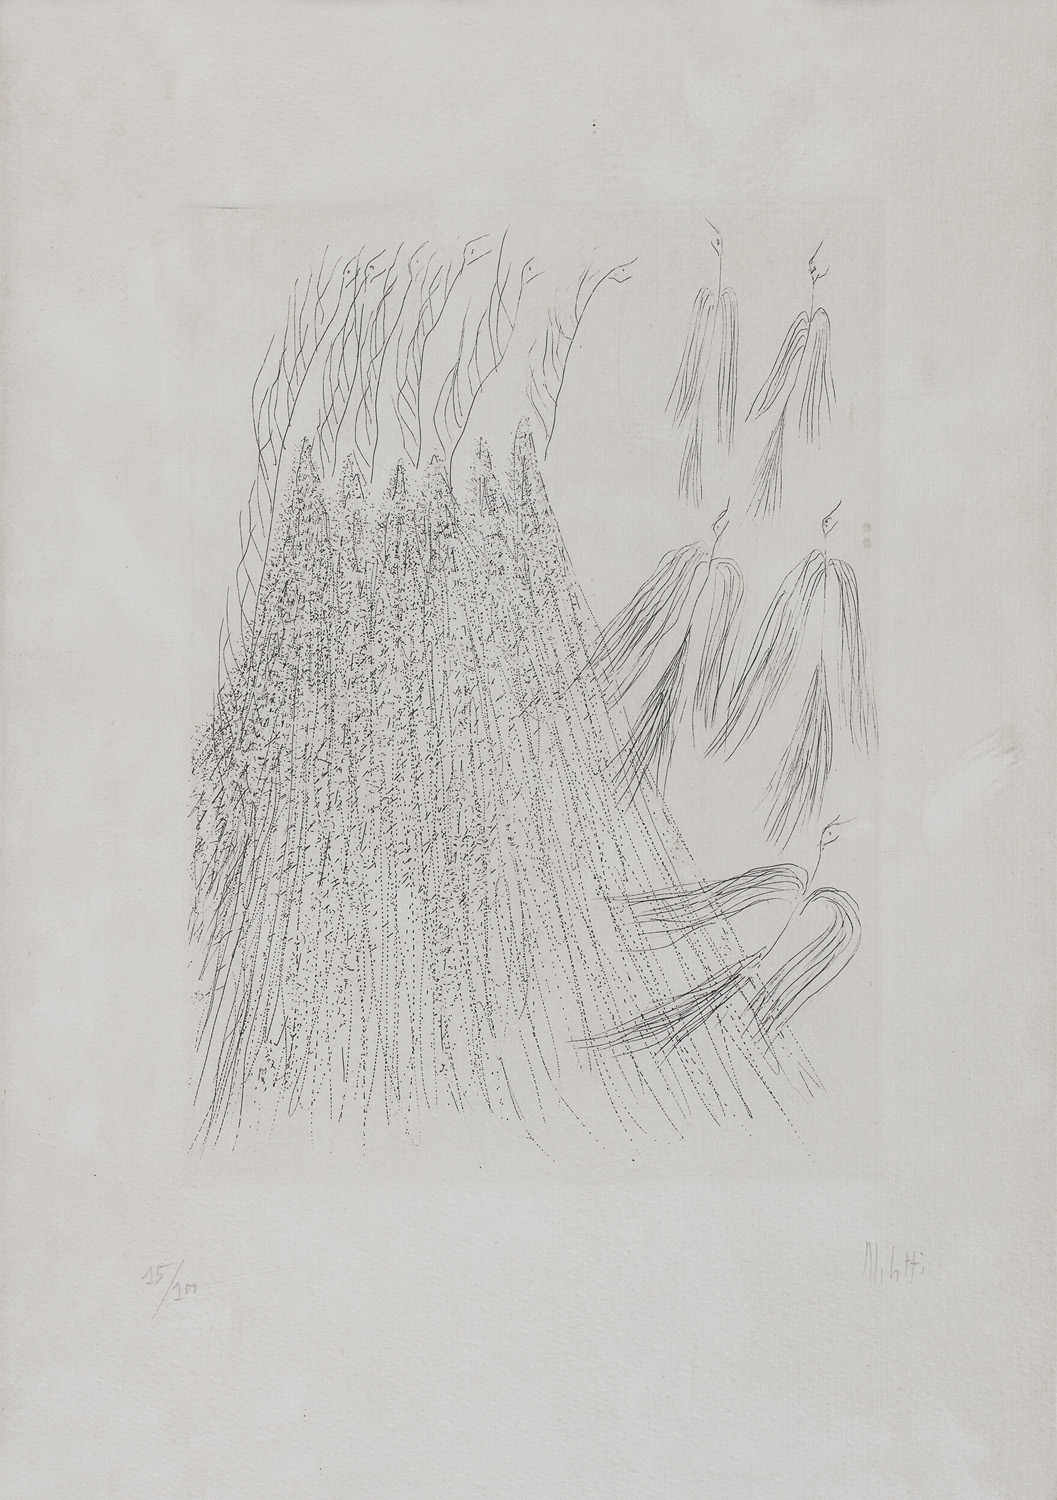 TWO ENGRAVINGS BY FAUSTO MELOTTI 1977